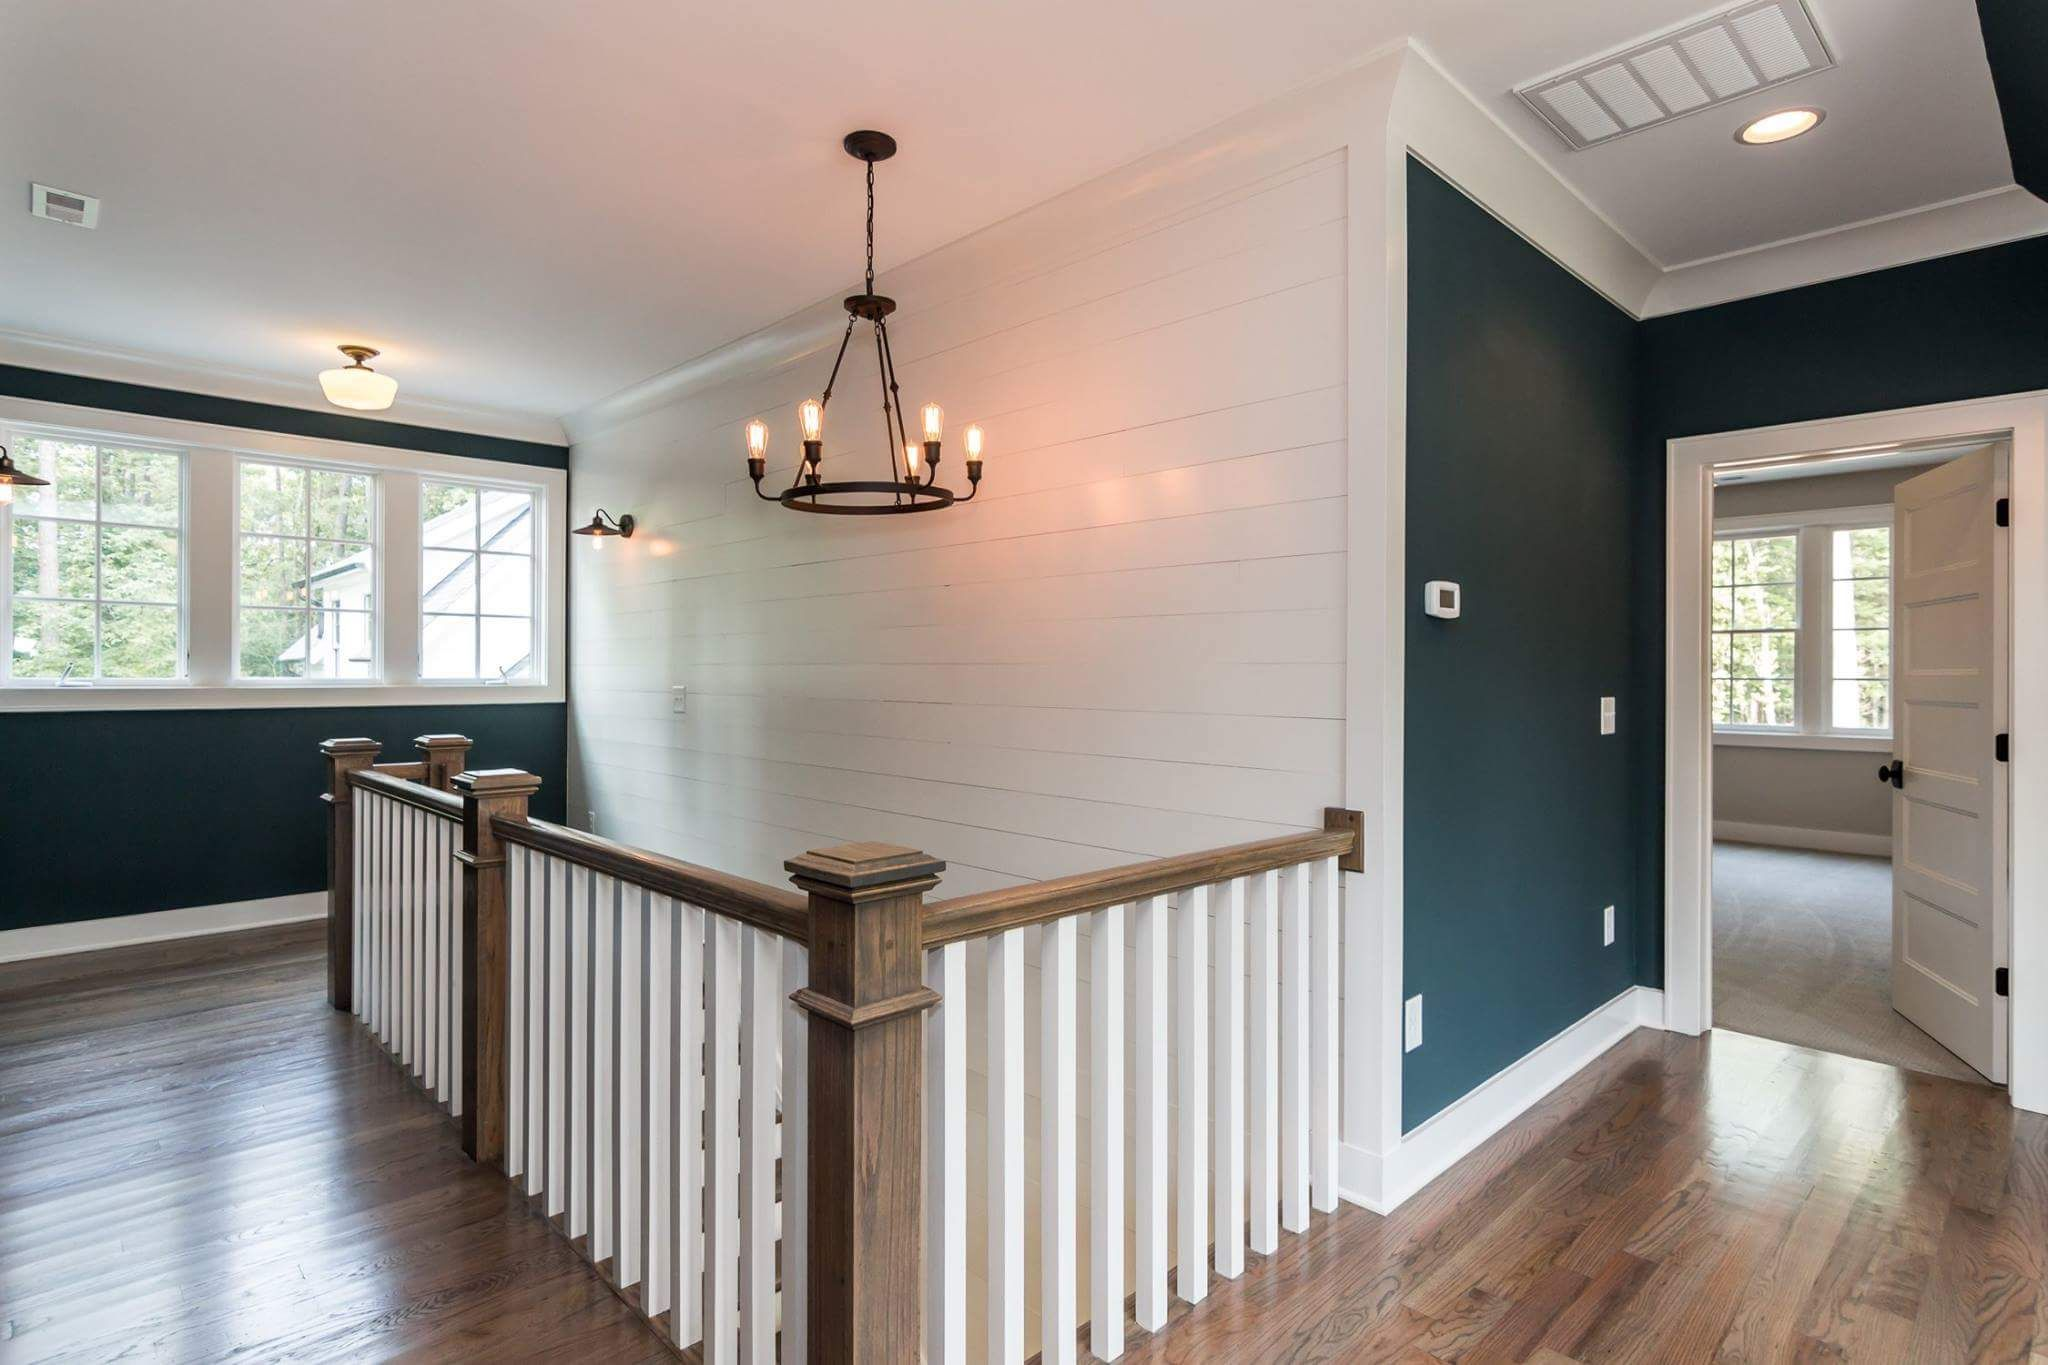 the olivia built by garman homes in nc southern living farmhouse the olivia built by garman homes in nc southern living farmhouse revival plan with